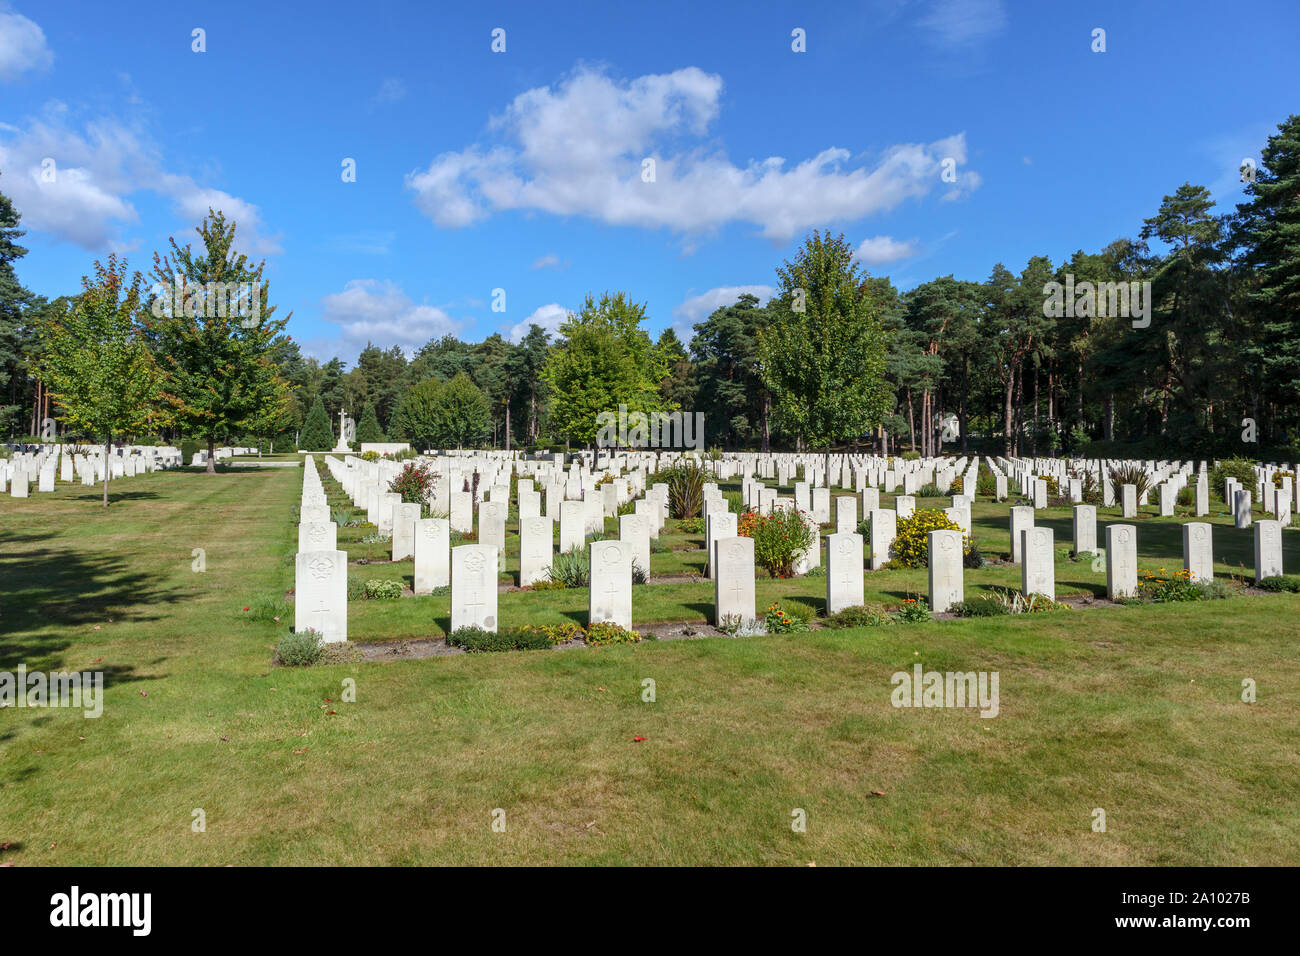 Rows of gravestones and cross in the Canadian Section of the Military Cemetery at Brookwood Cemetery, Pirbright, Woking, Surrey, southeast England, UK Stock Photo